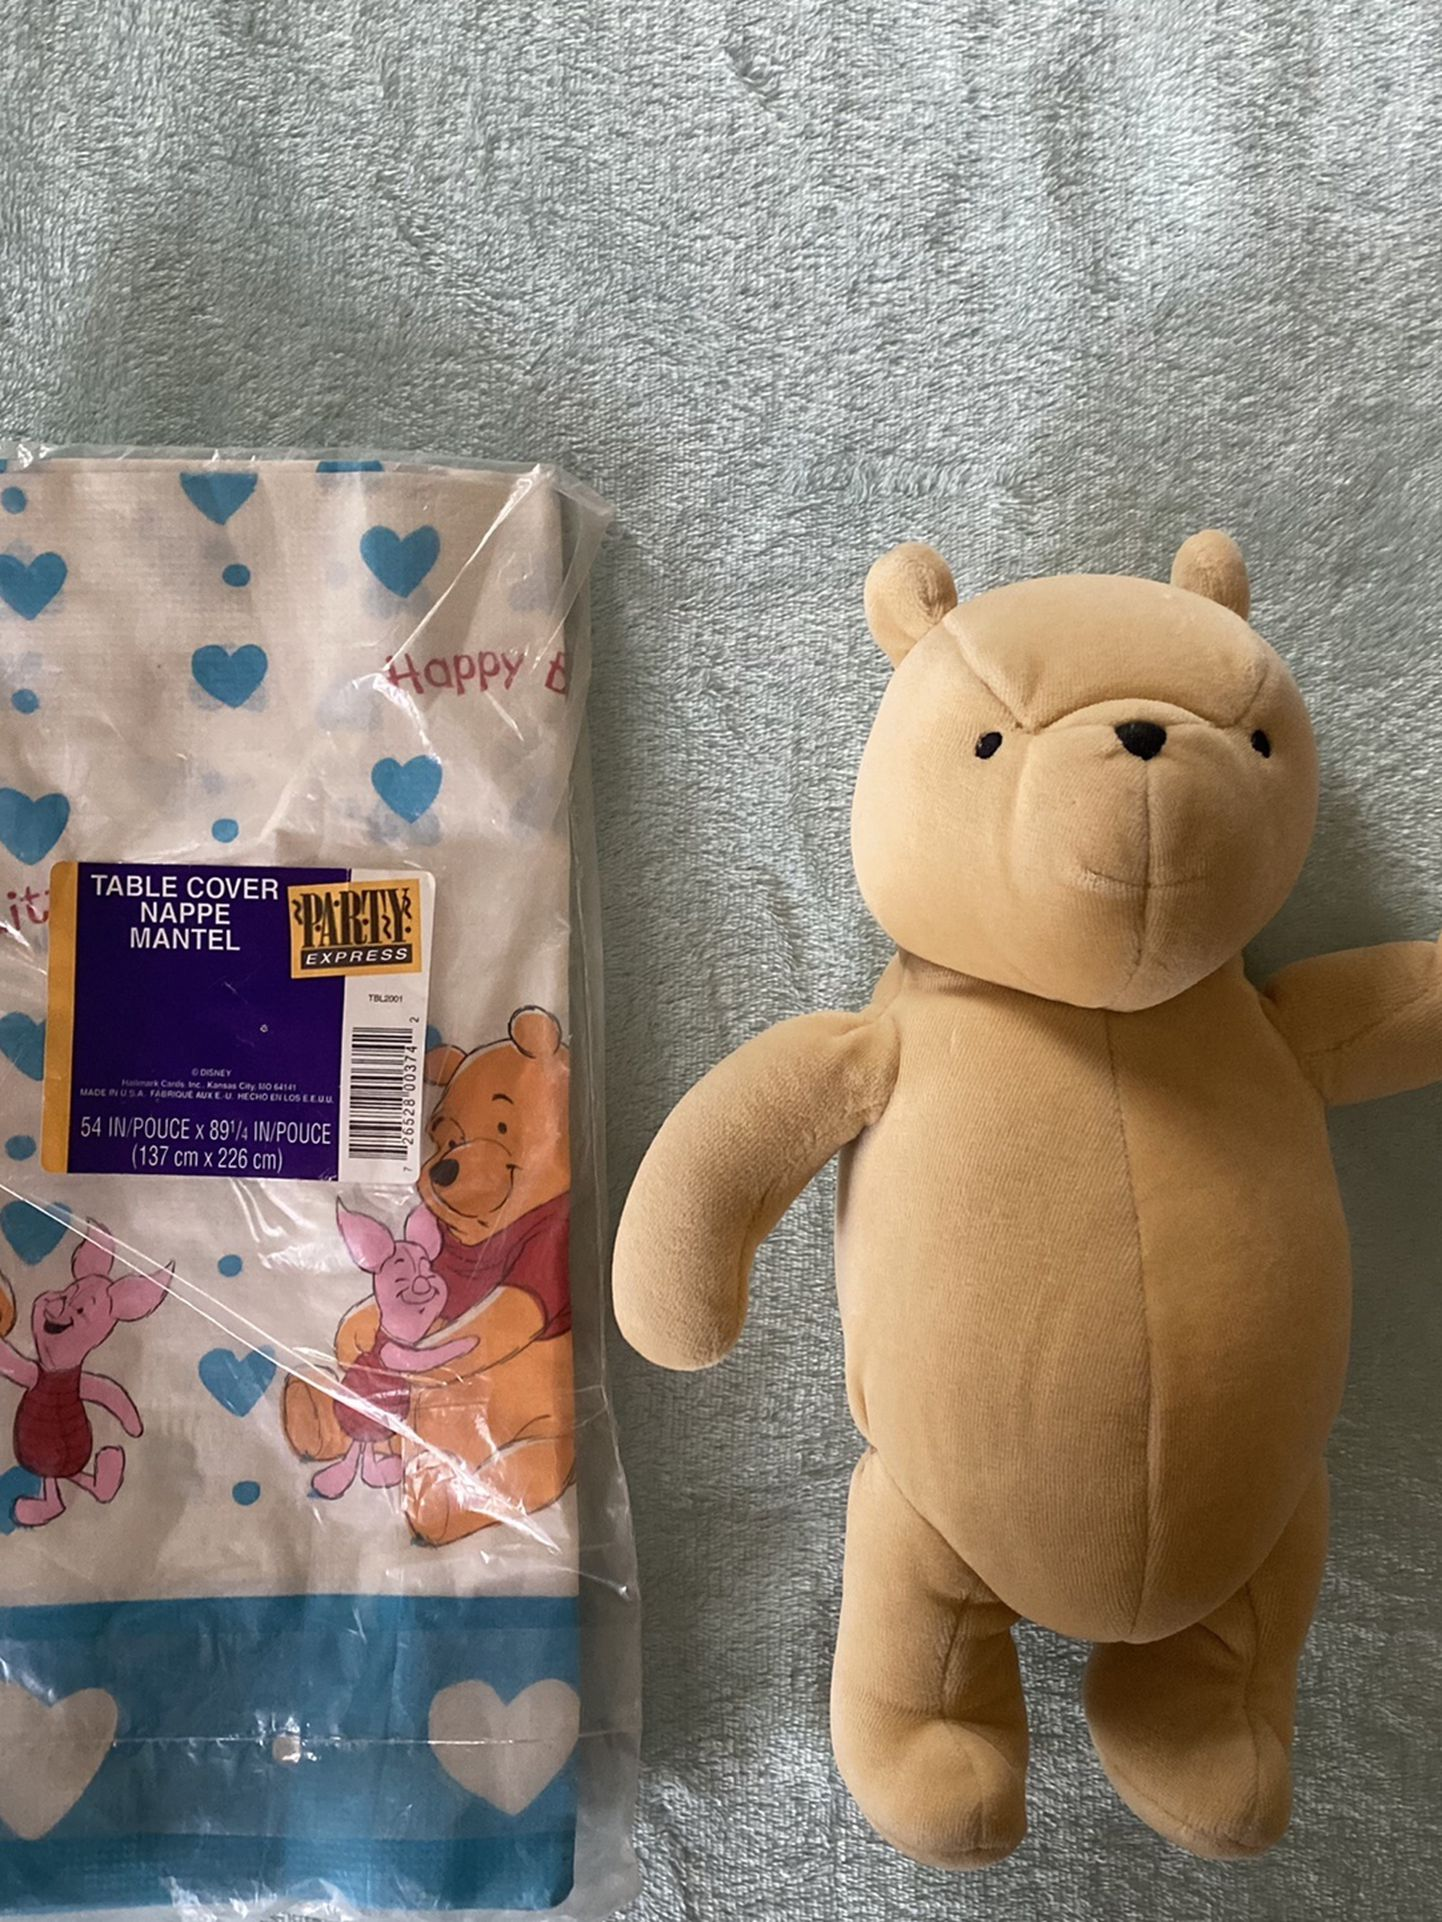 Winnie The Pooh Bear And Table Cover